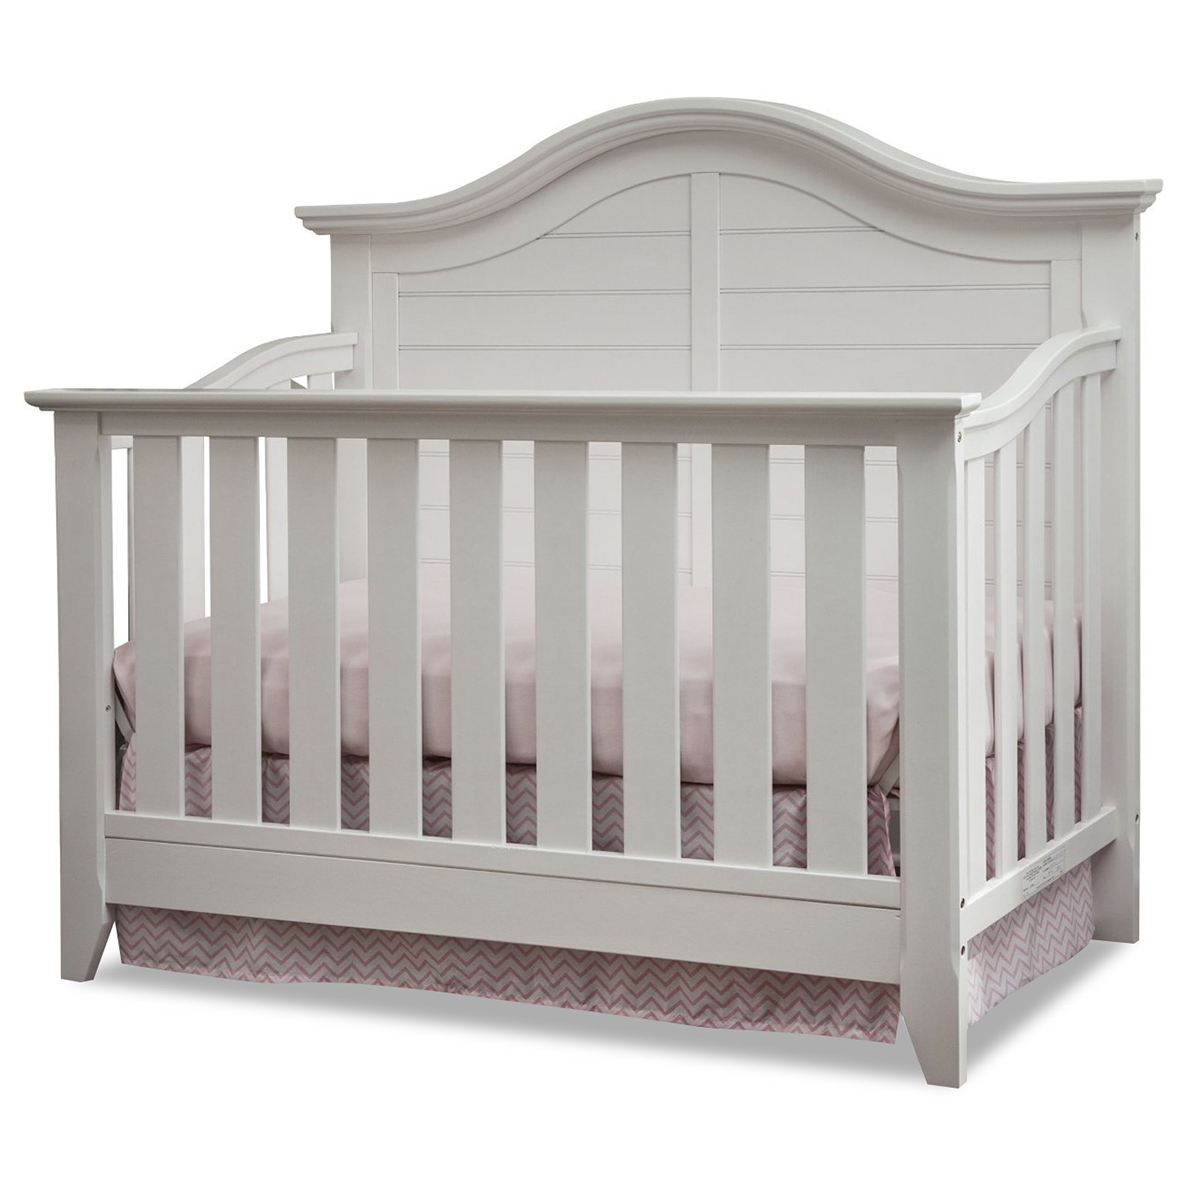 Used crib for sale toronto - Thomasville Southern Dunes Lifestyle Crib In White